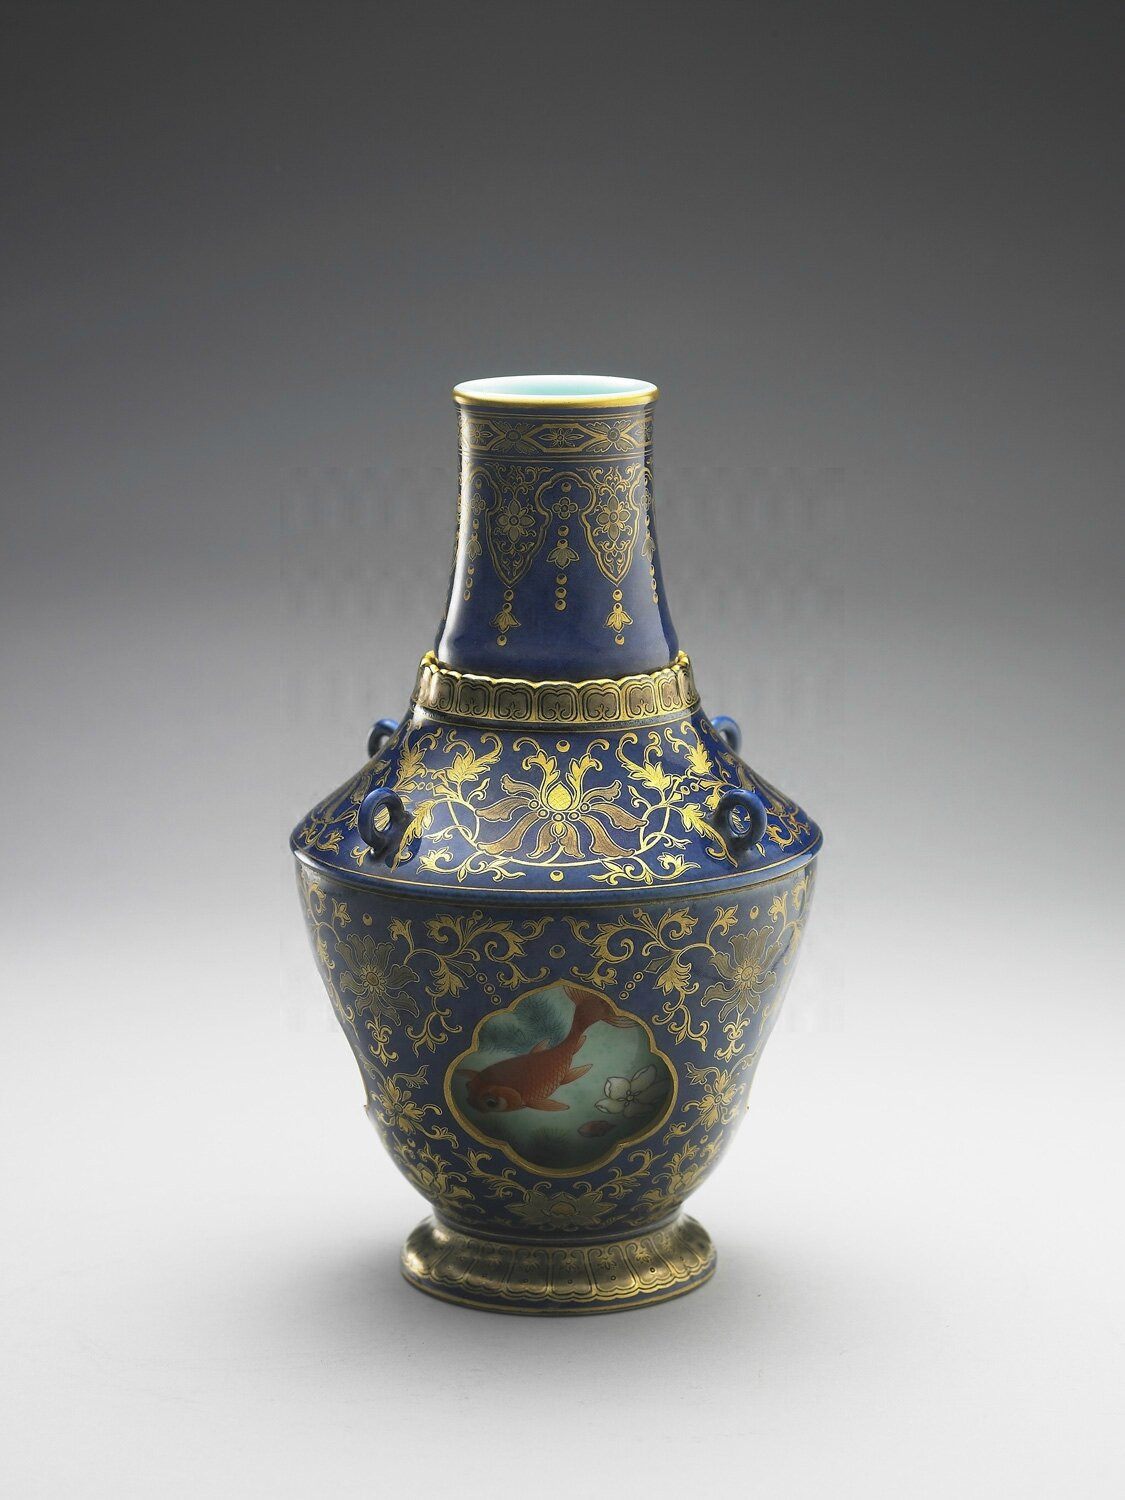 Vase, painted gold on indigo ground, with revolving interior with swimming fishes design in fencai overglaze enamel, Jingdezhen ware, Qing dynasty, Qianlong era (1736–1795). National Palace Museum, Taipei.